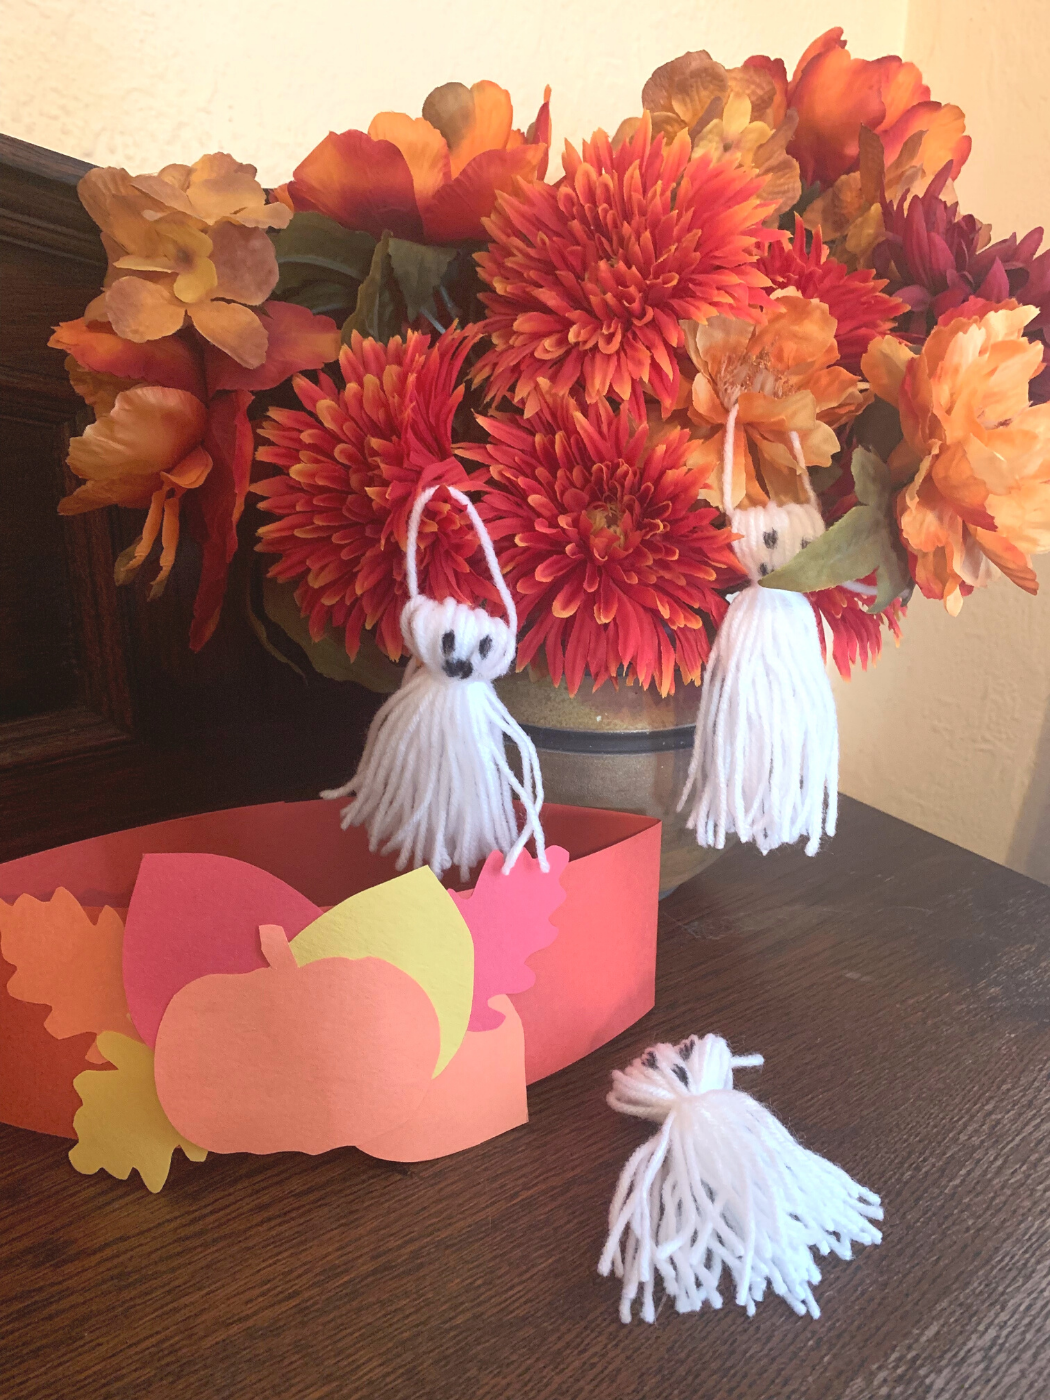 A pumpkin headband and three ghost crafts on a table in front of a fall flower arrangement